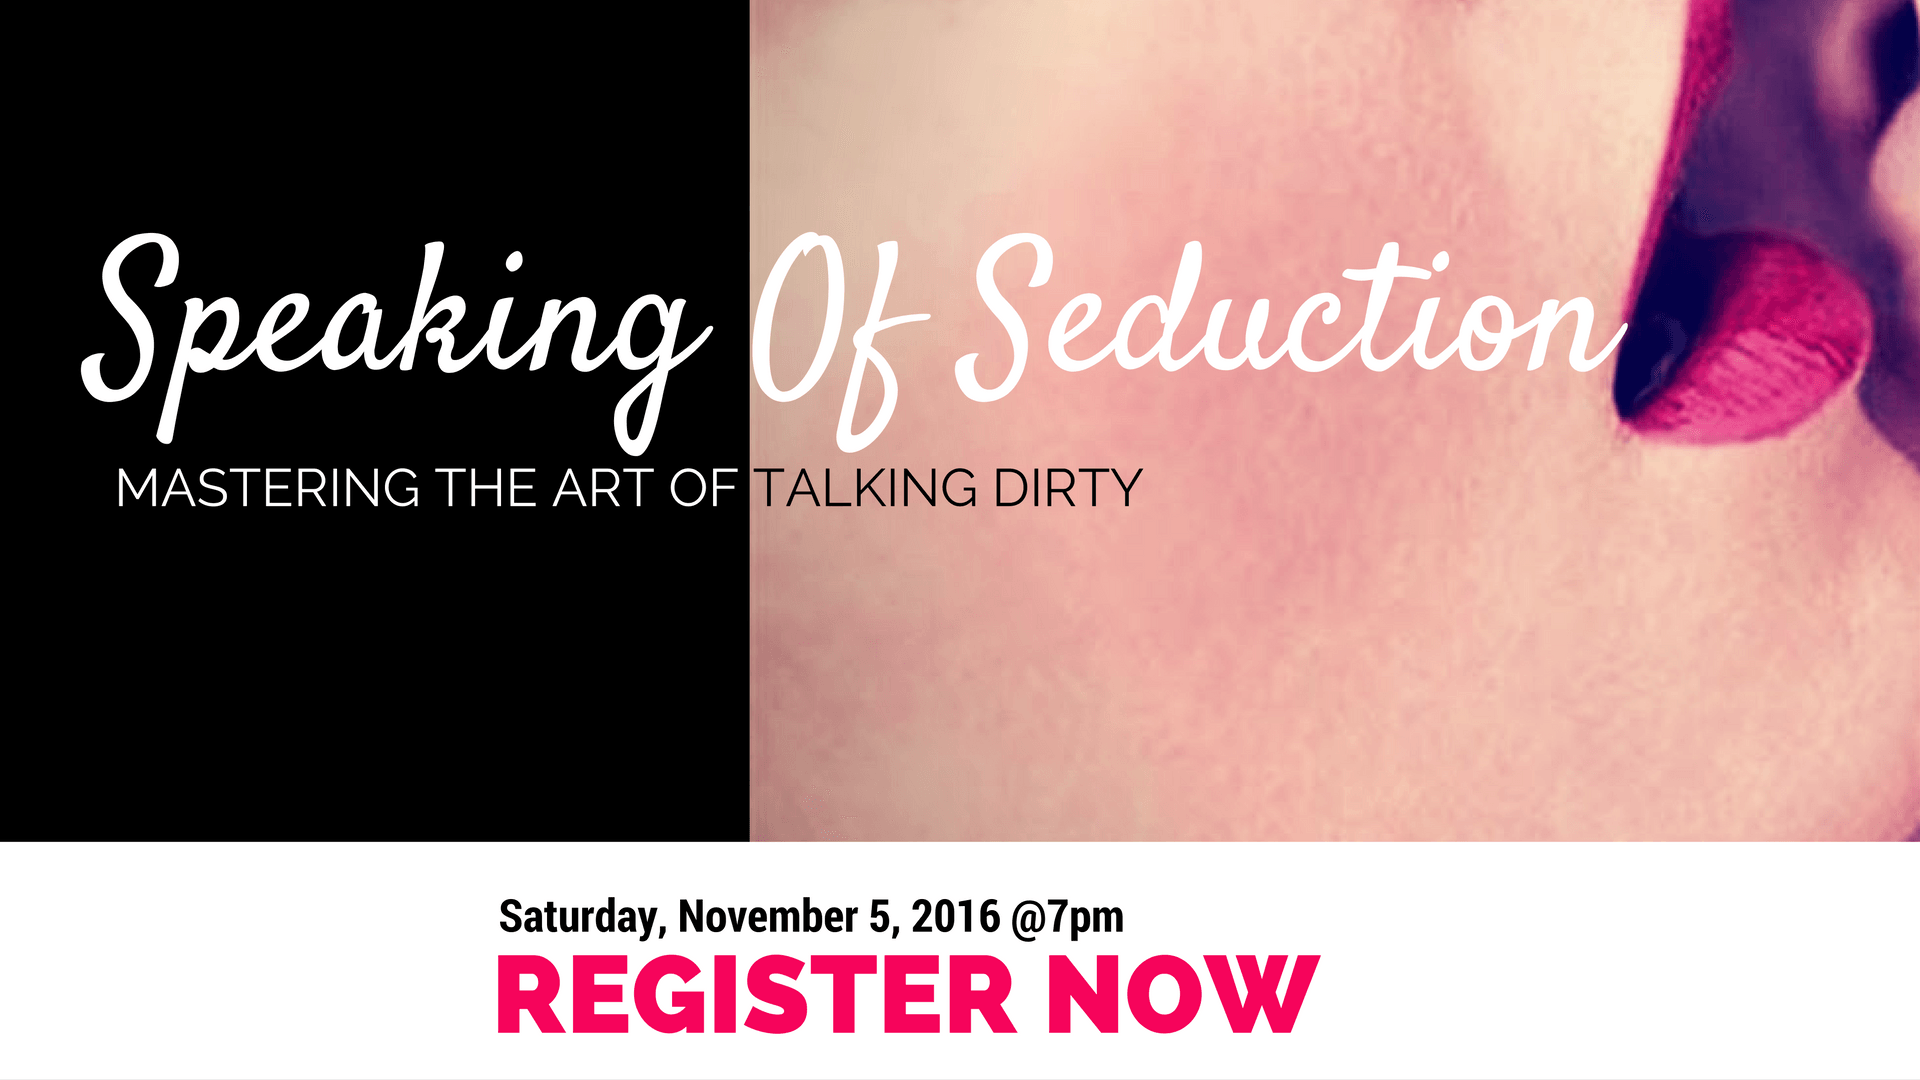 Ready to learn how to talk dirty? Dawn Serra is teaching the fine art of dirty talk and seduction at Secret Pleasures Boutique in DC.